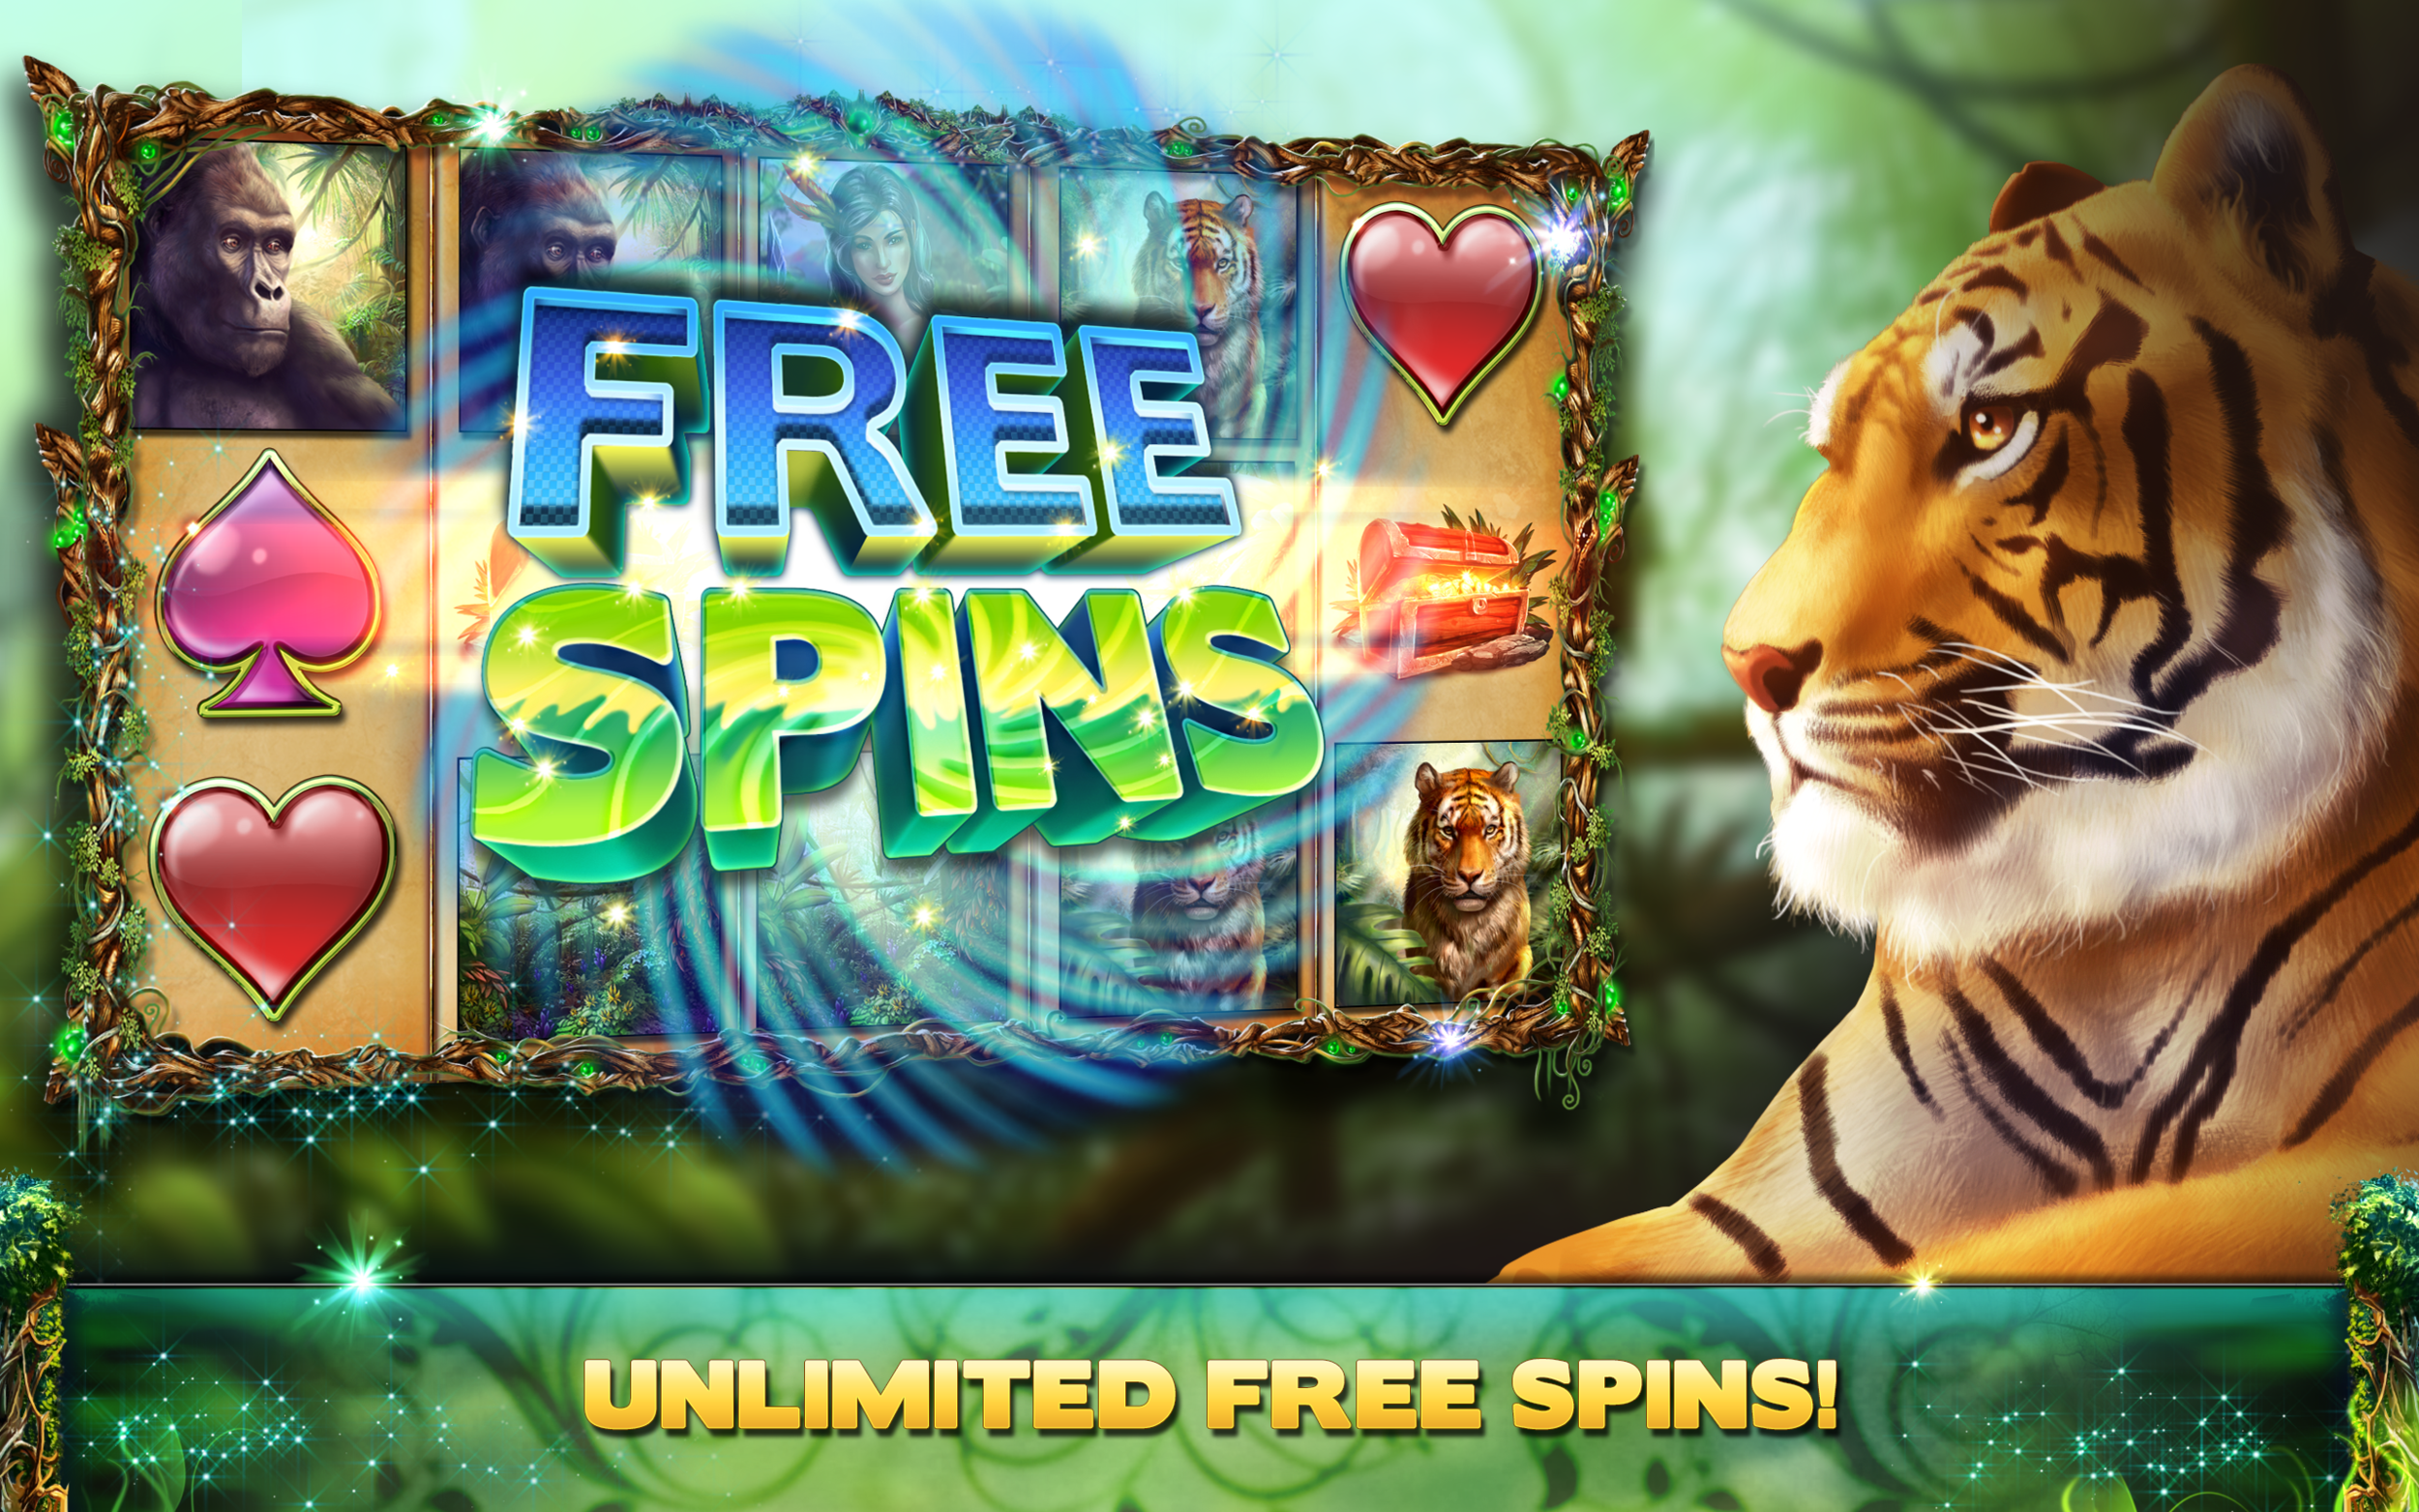 2560_1600_screen_04_free_spins.png